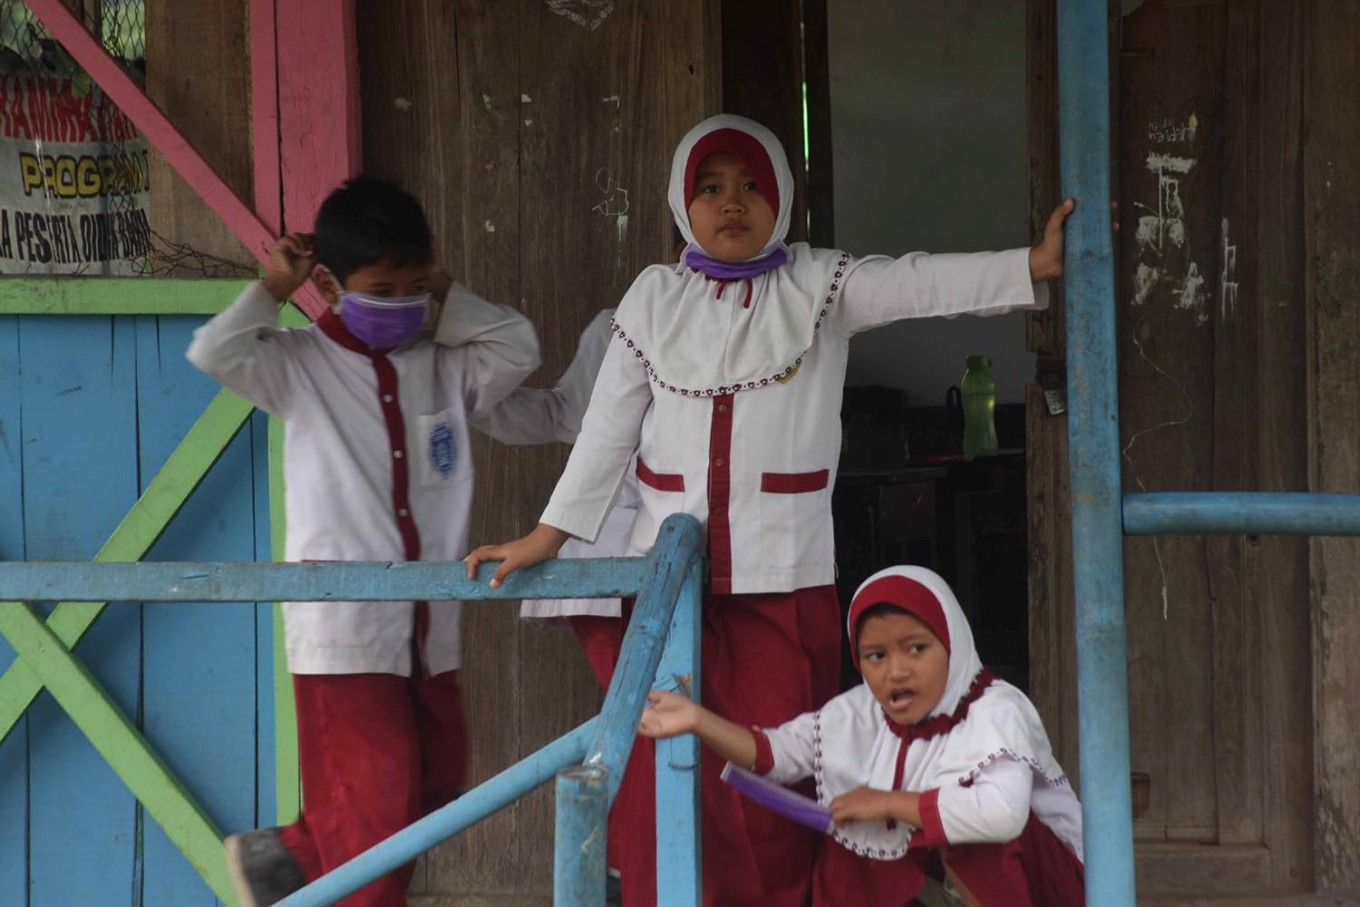 Two girls take off their surgical masks during a school break. JP/Maksum Nur Fauzan